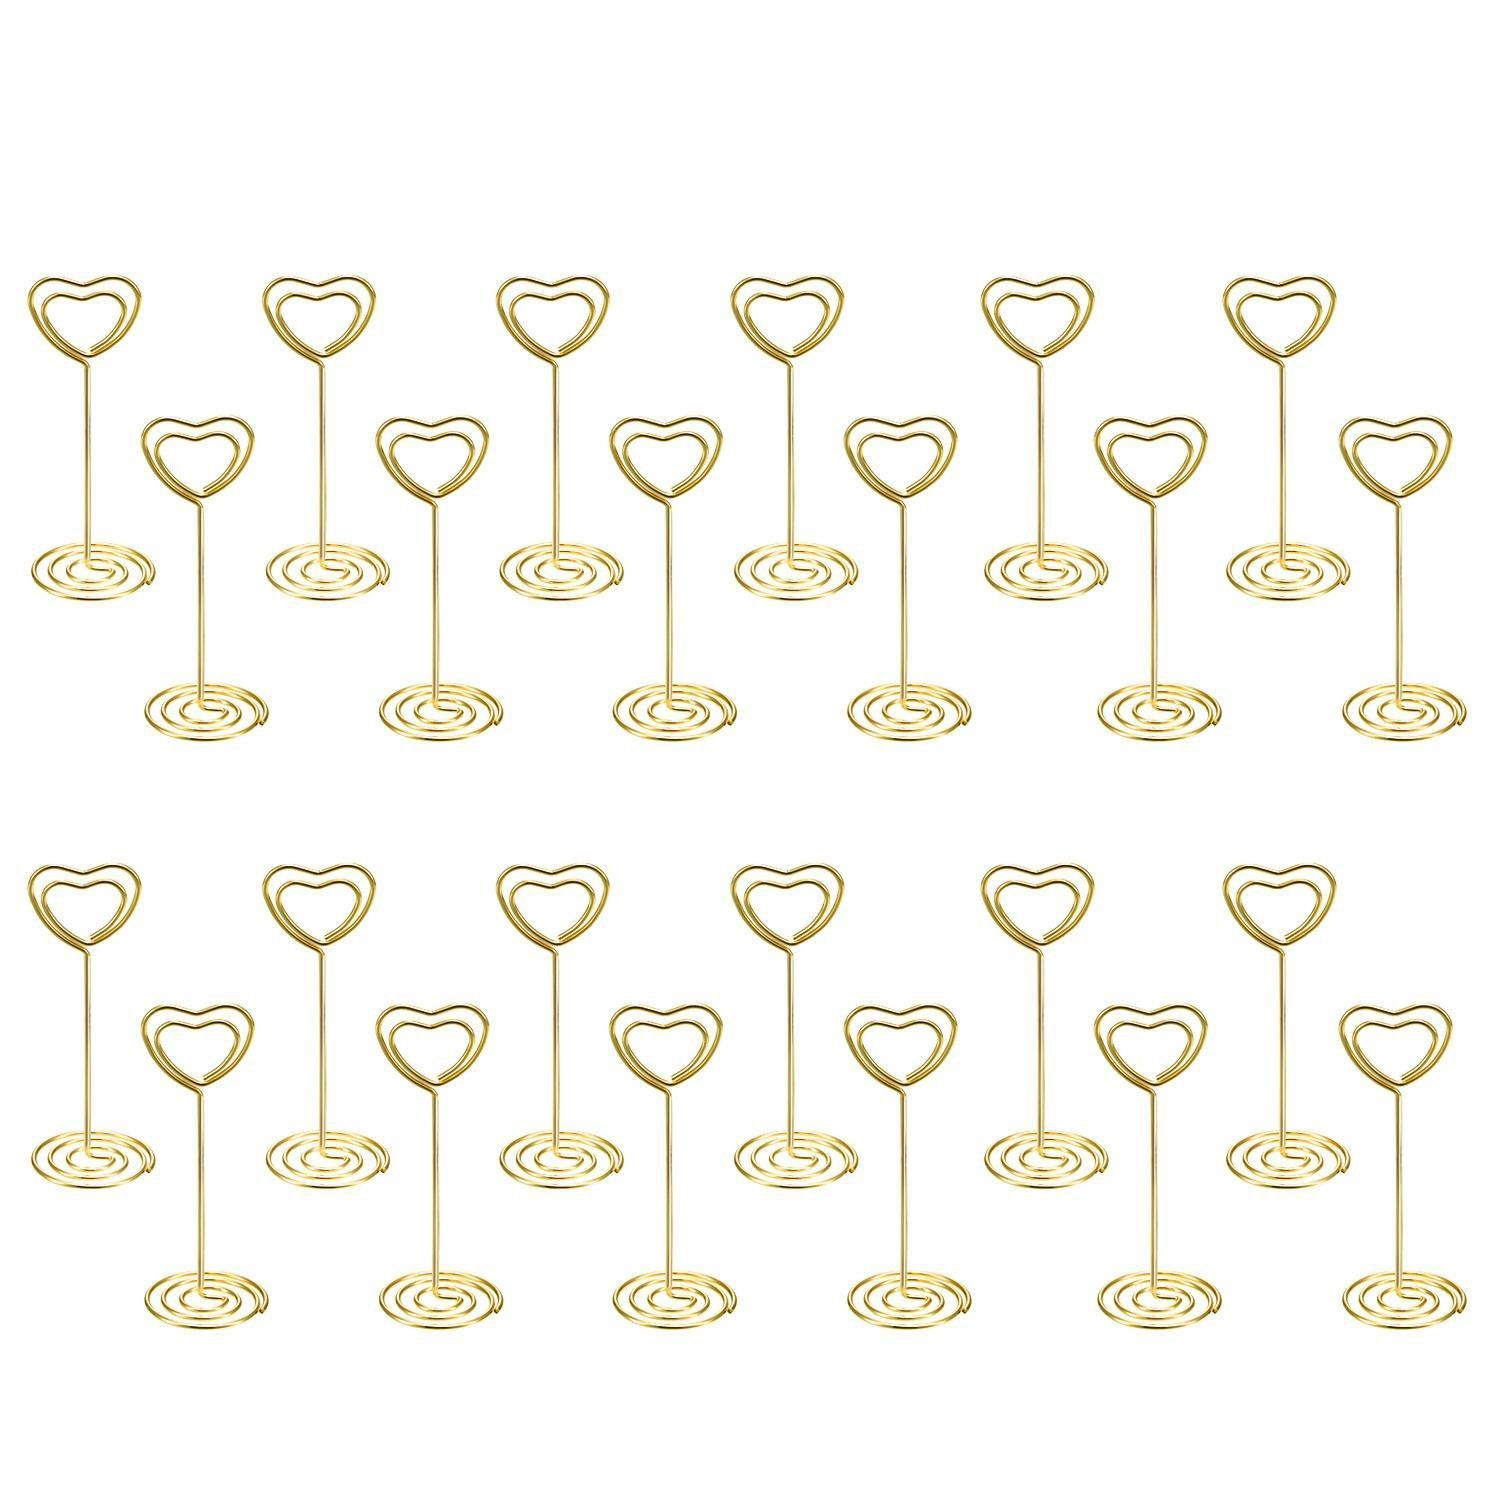 Hot sale 24 Pack of Table Number Card Holders Photo Holder Stand Place Card Paper Menu Clips Holders, Gold Heart Shape heart of gold